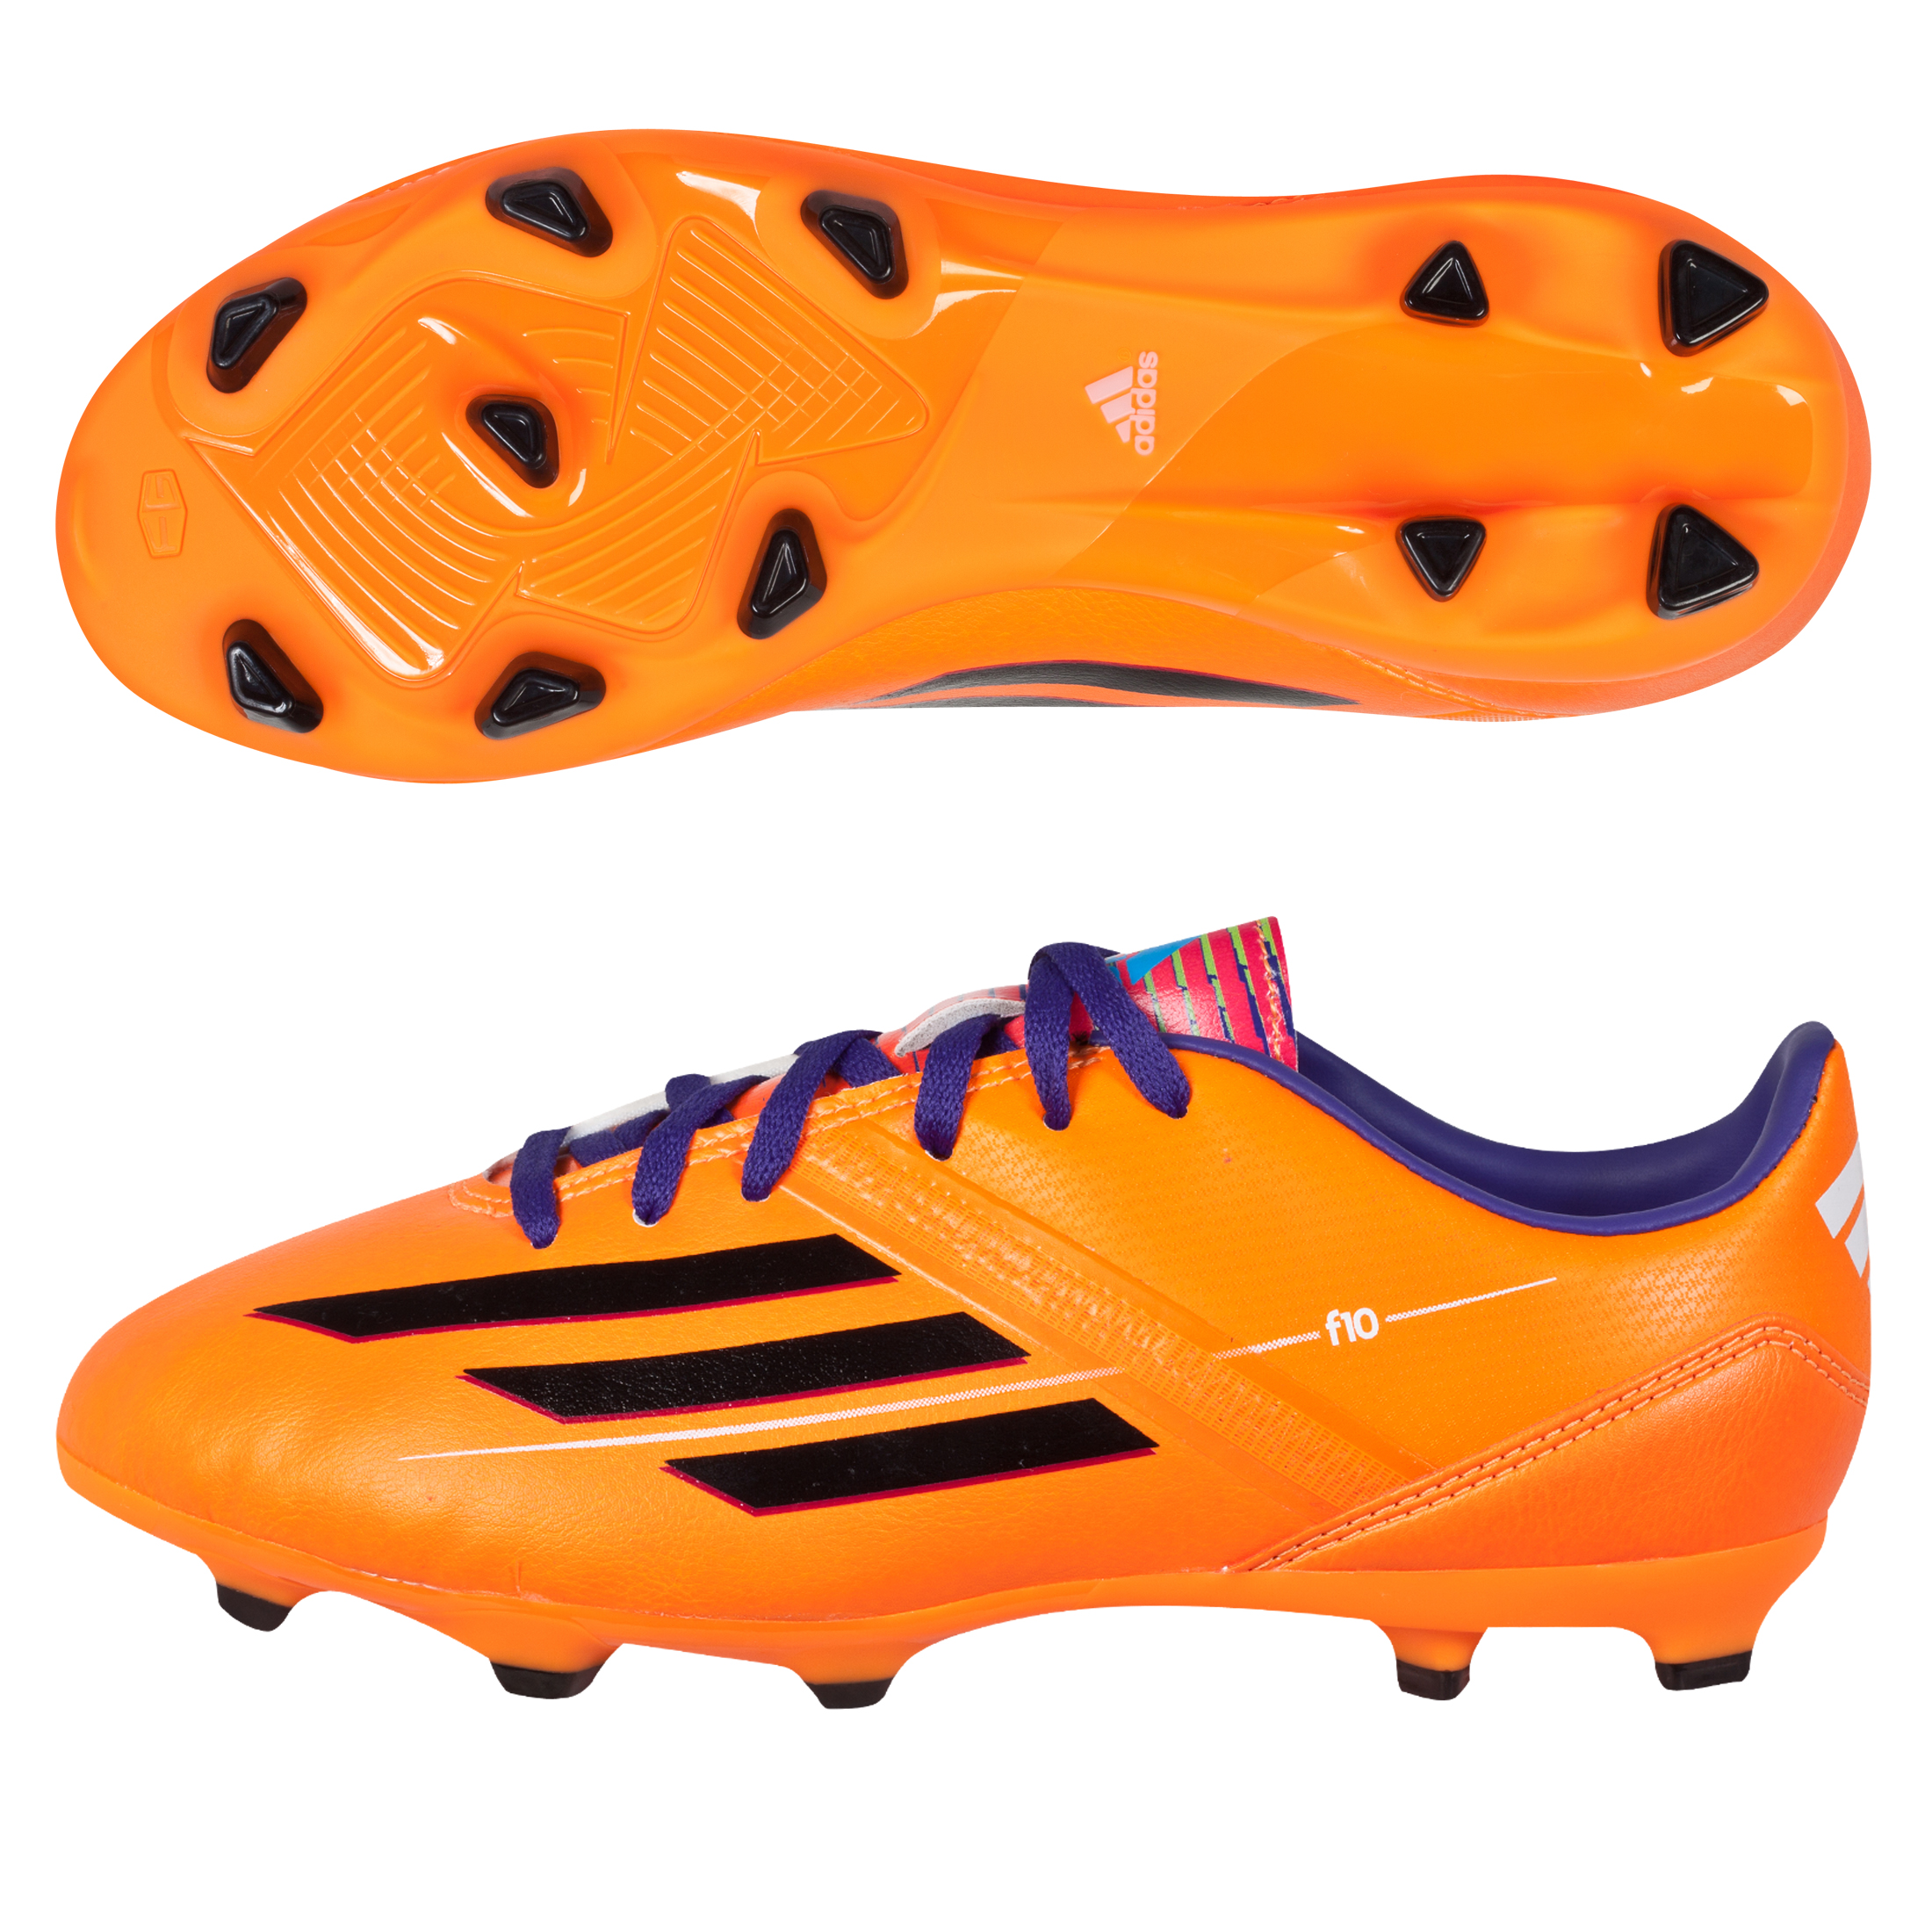 Adidas F10 TRX Firm Ground Football Boots - Kids Orange